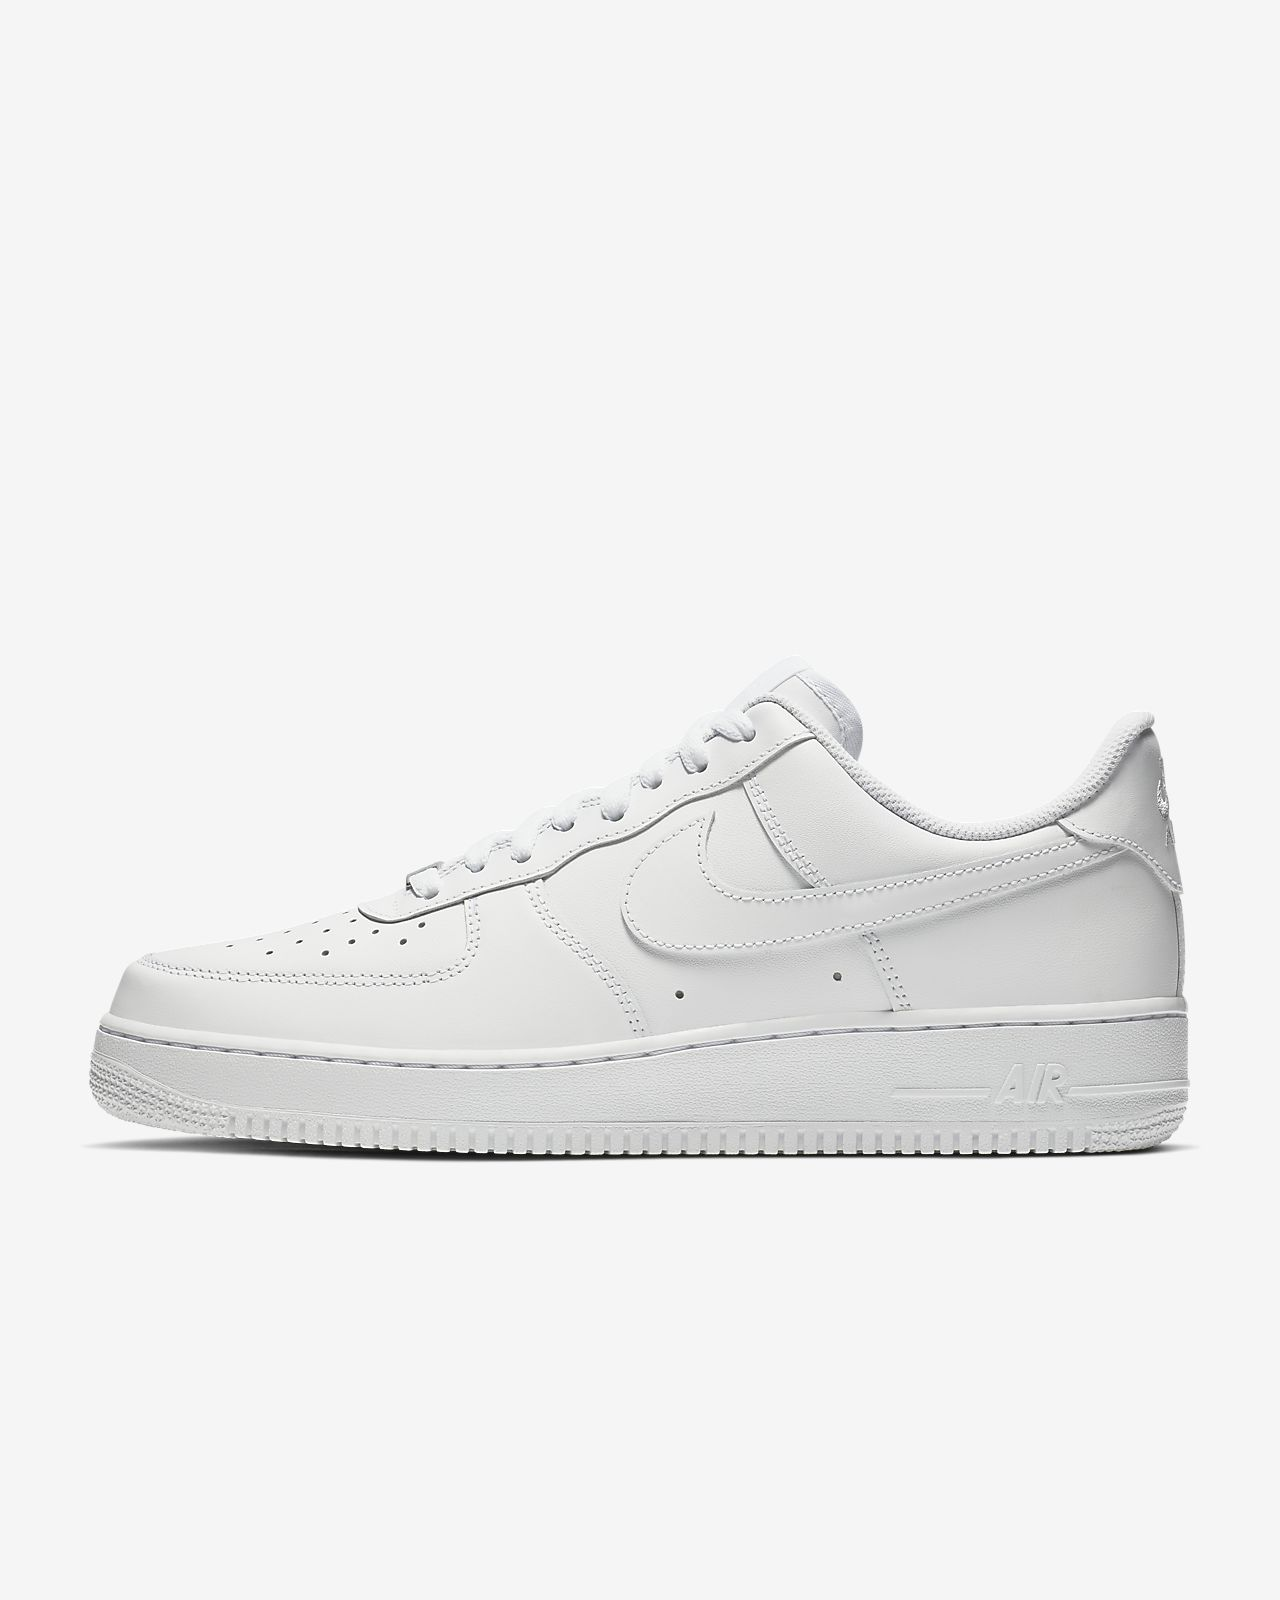 shiny air force 1 nz